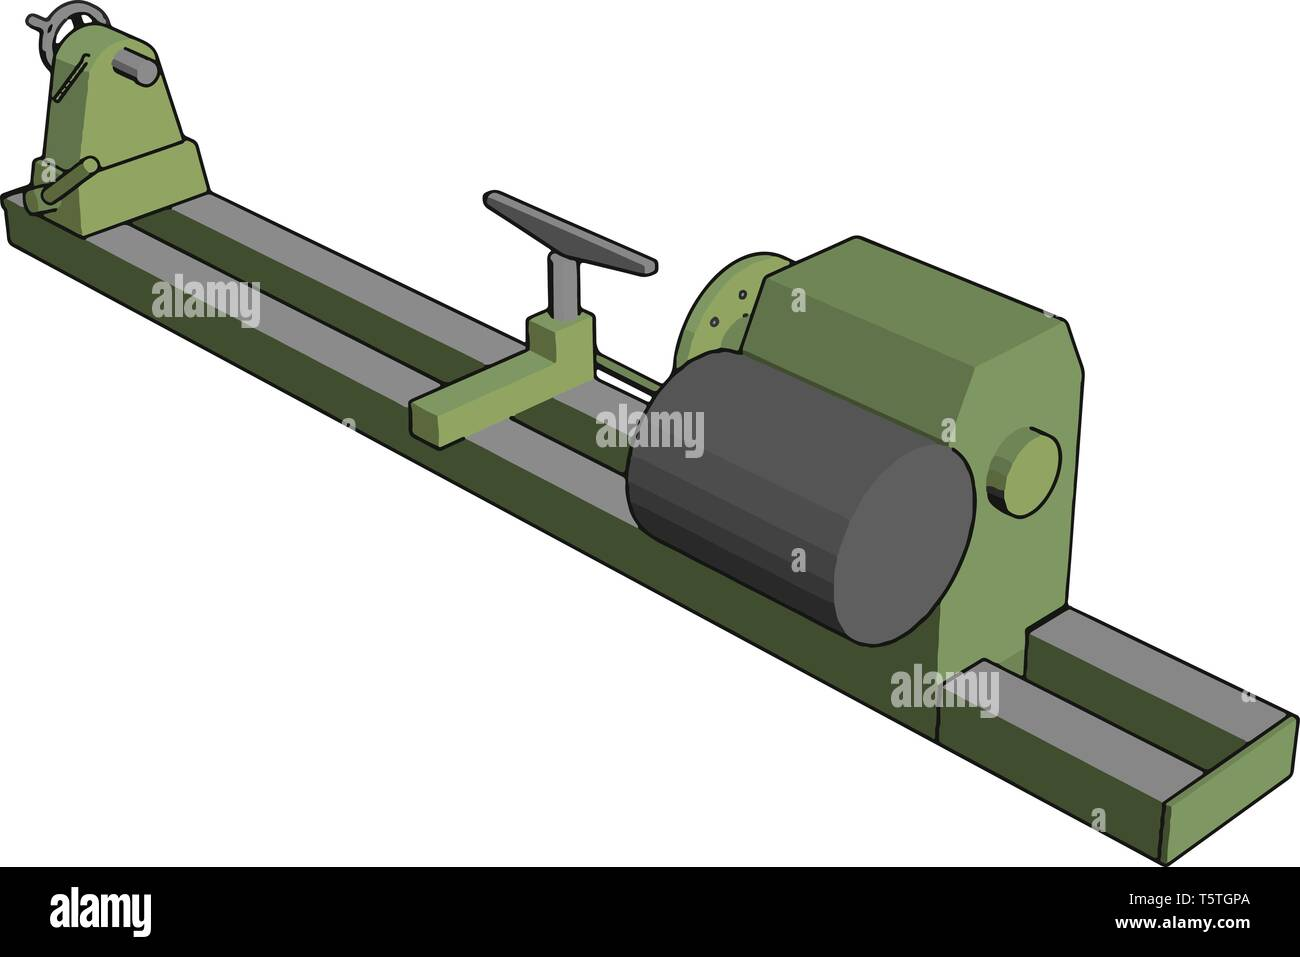 Industrial green and grey lathe vector illustration on white background Stock Vector